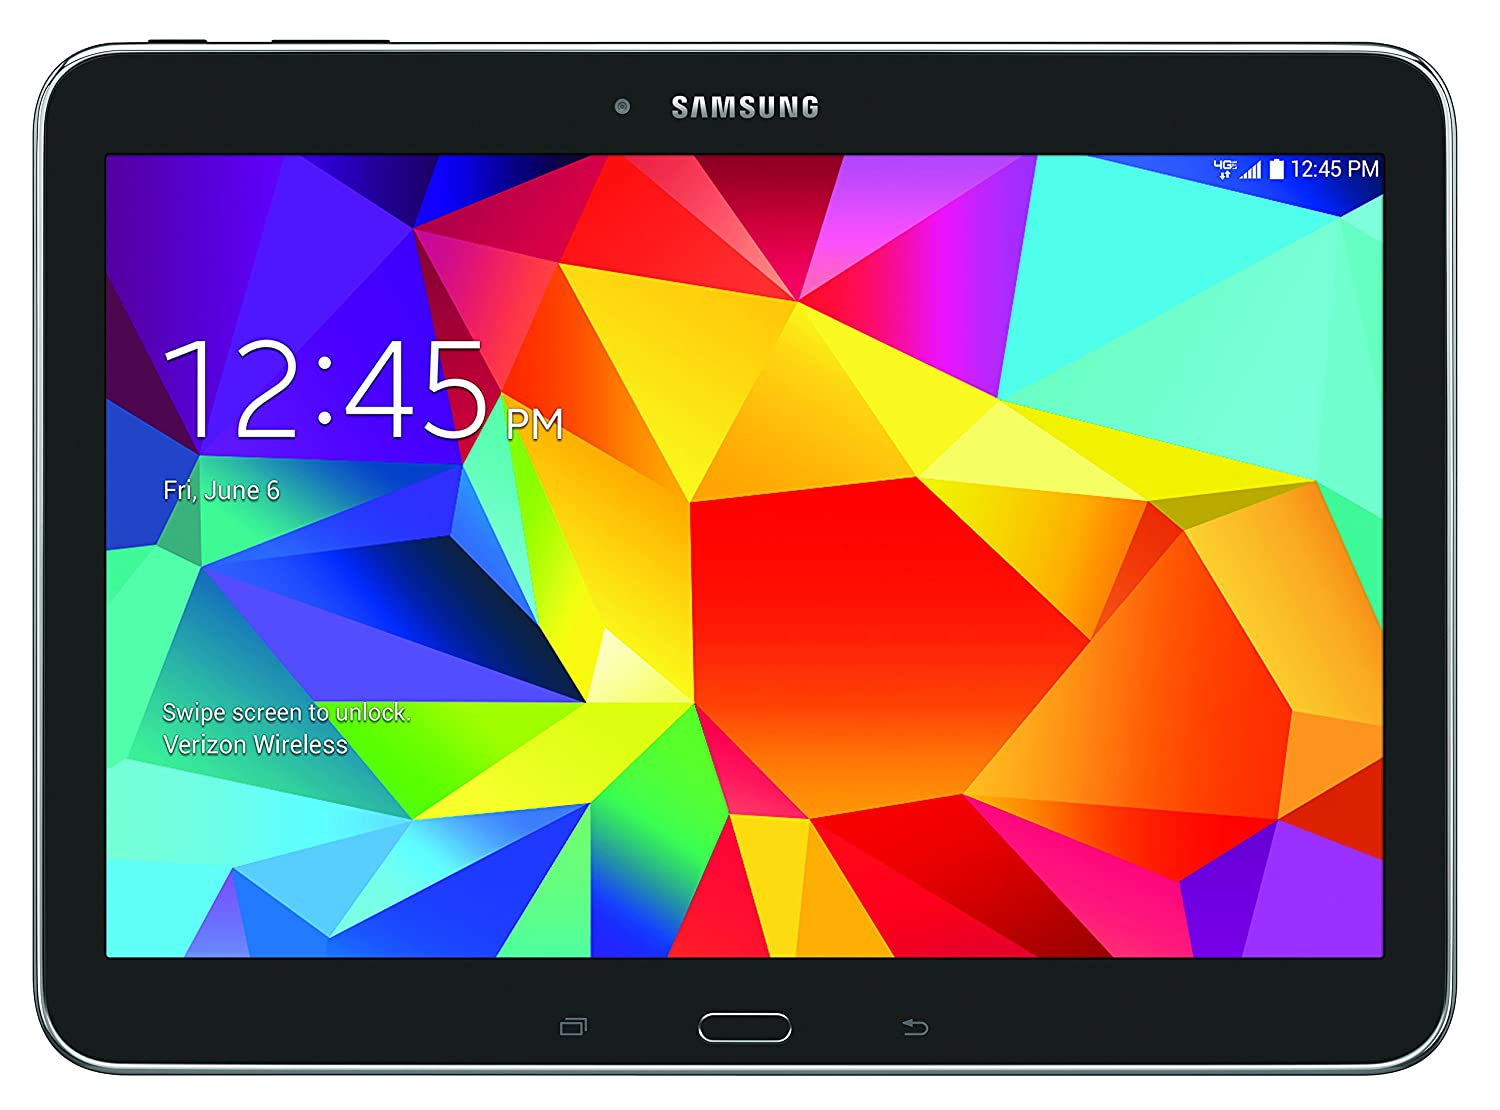 samsung galaxy tab 4 4g lte tablet storminya. Black Bedroom Furniture Sets. Home Design Ideas